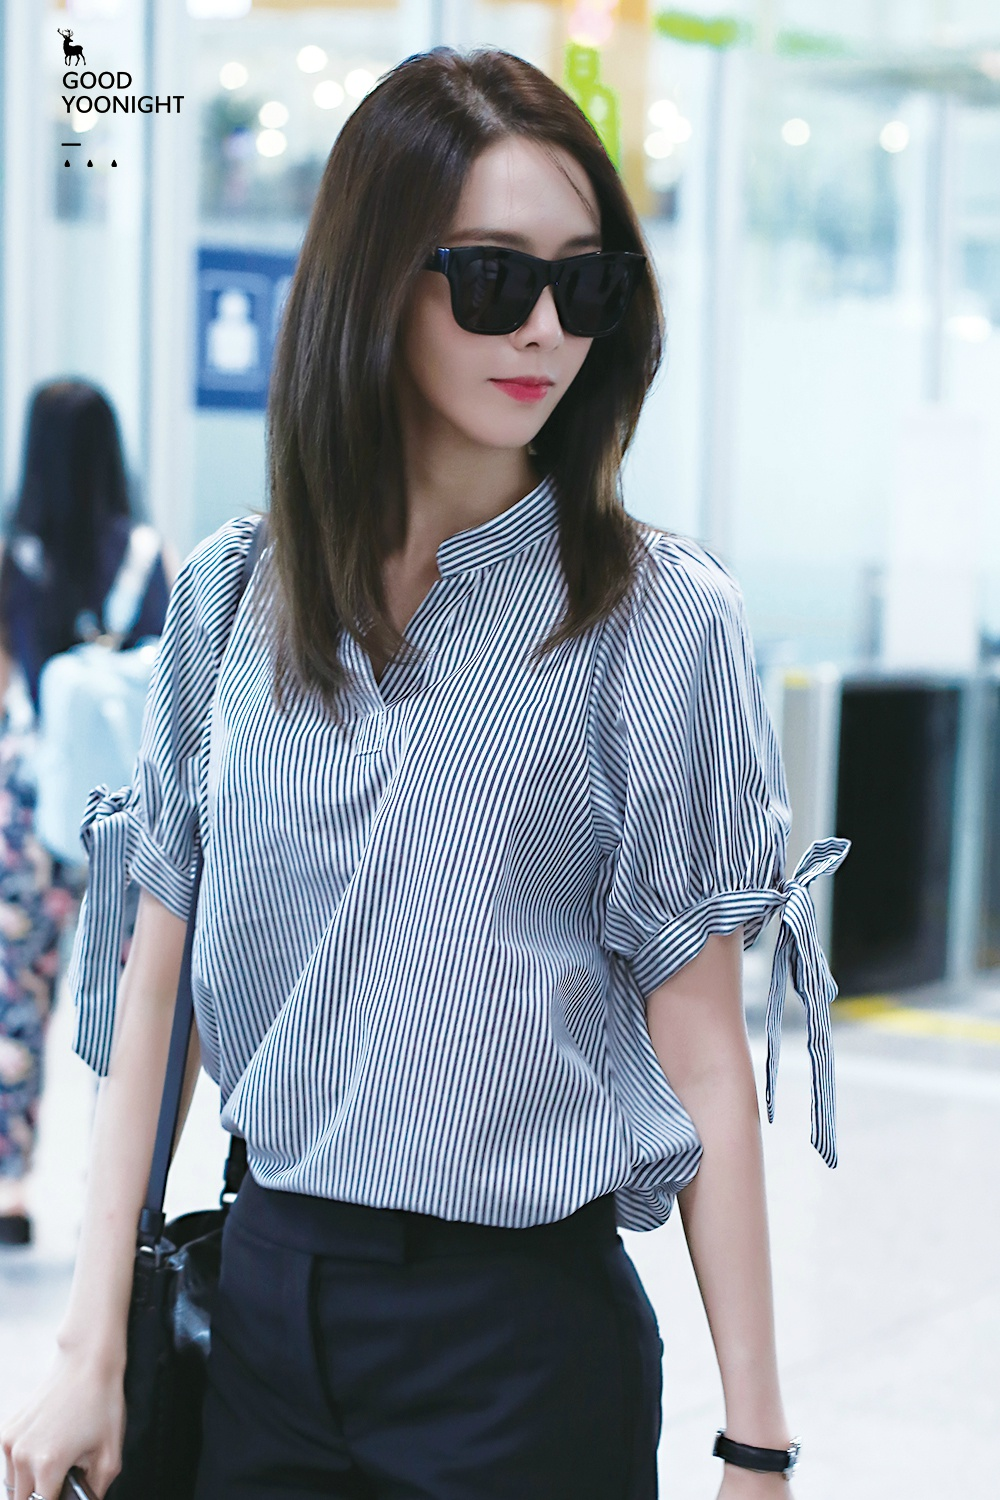 Yoona 160707 Incheon Airport Manuth Chek S Soshi Site